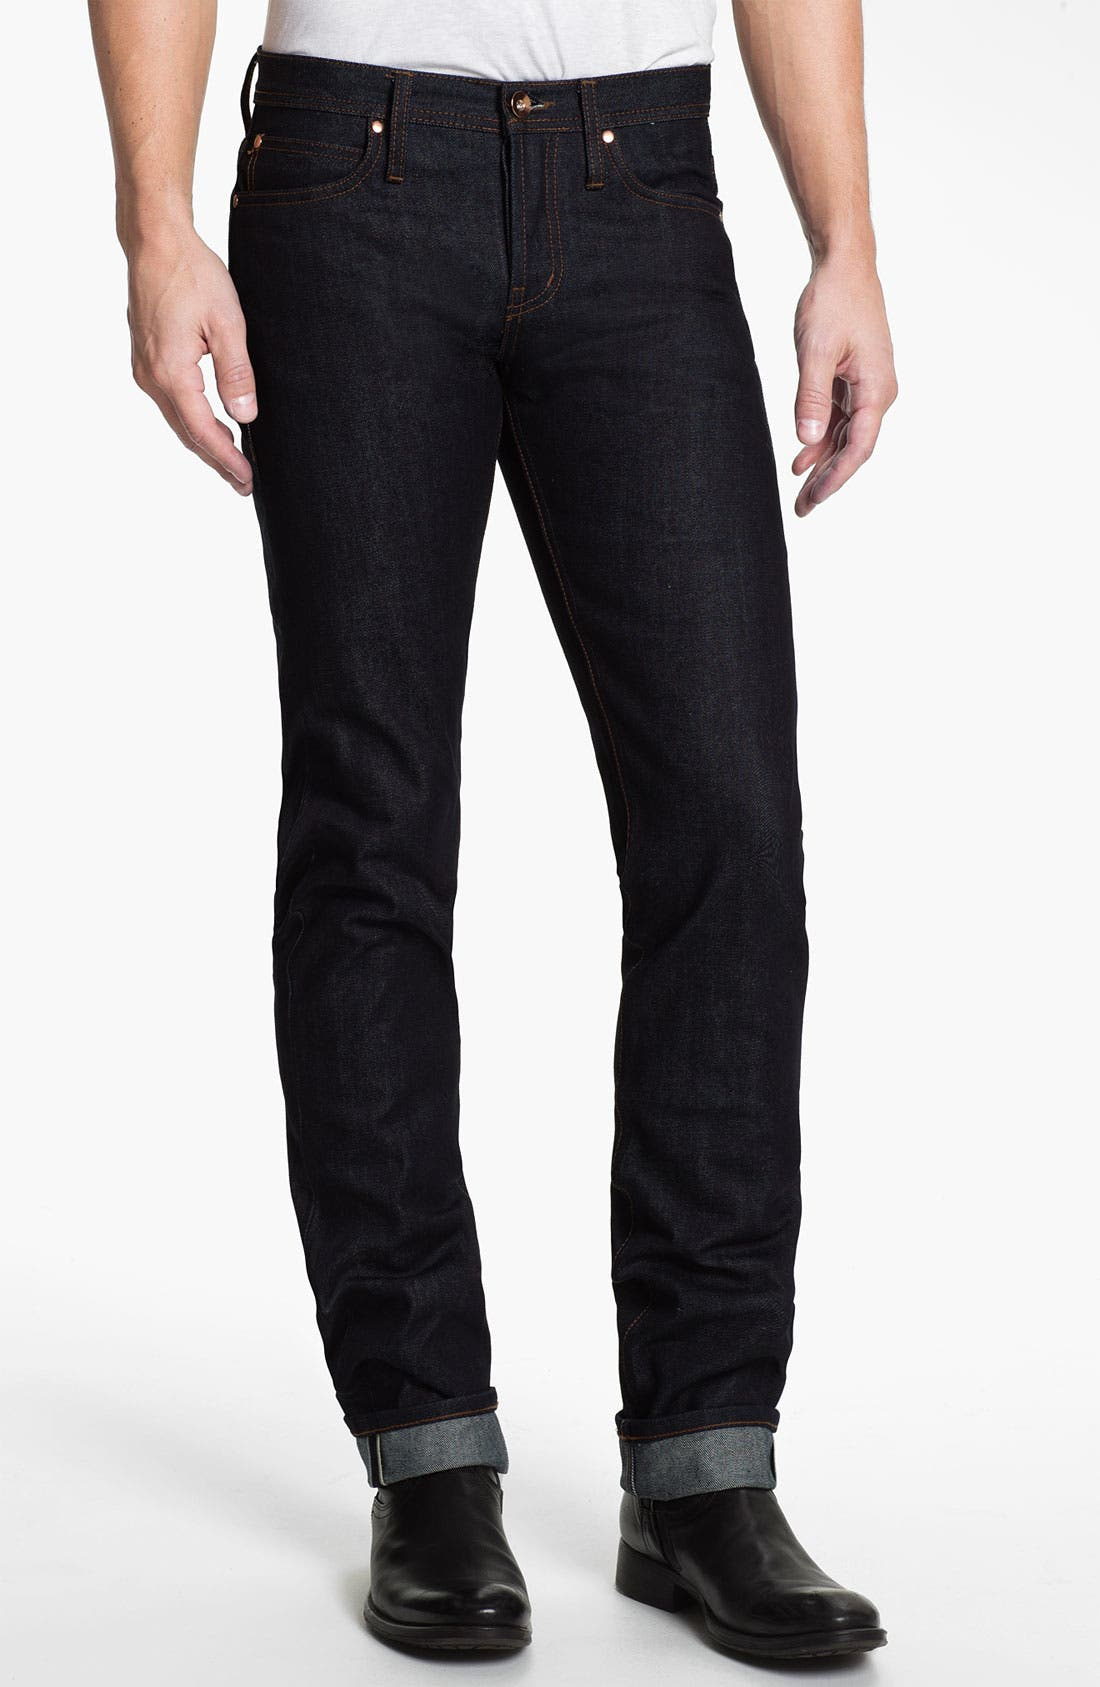 Men's The Unbranded Brand Ub101 Skinny Fit Raw Selvedge Jeans